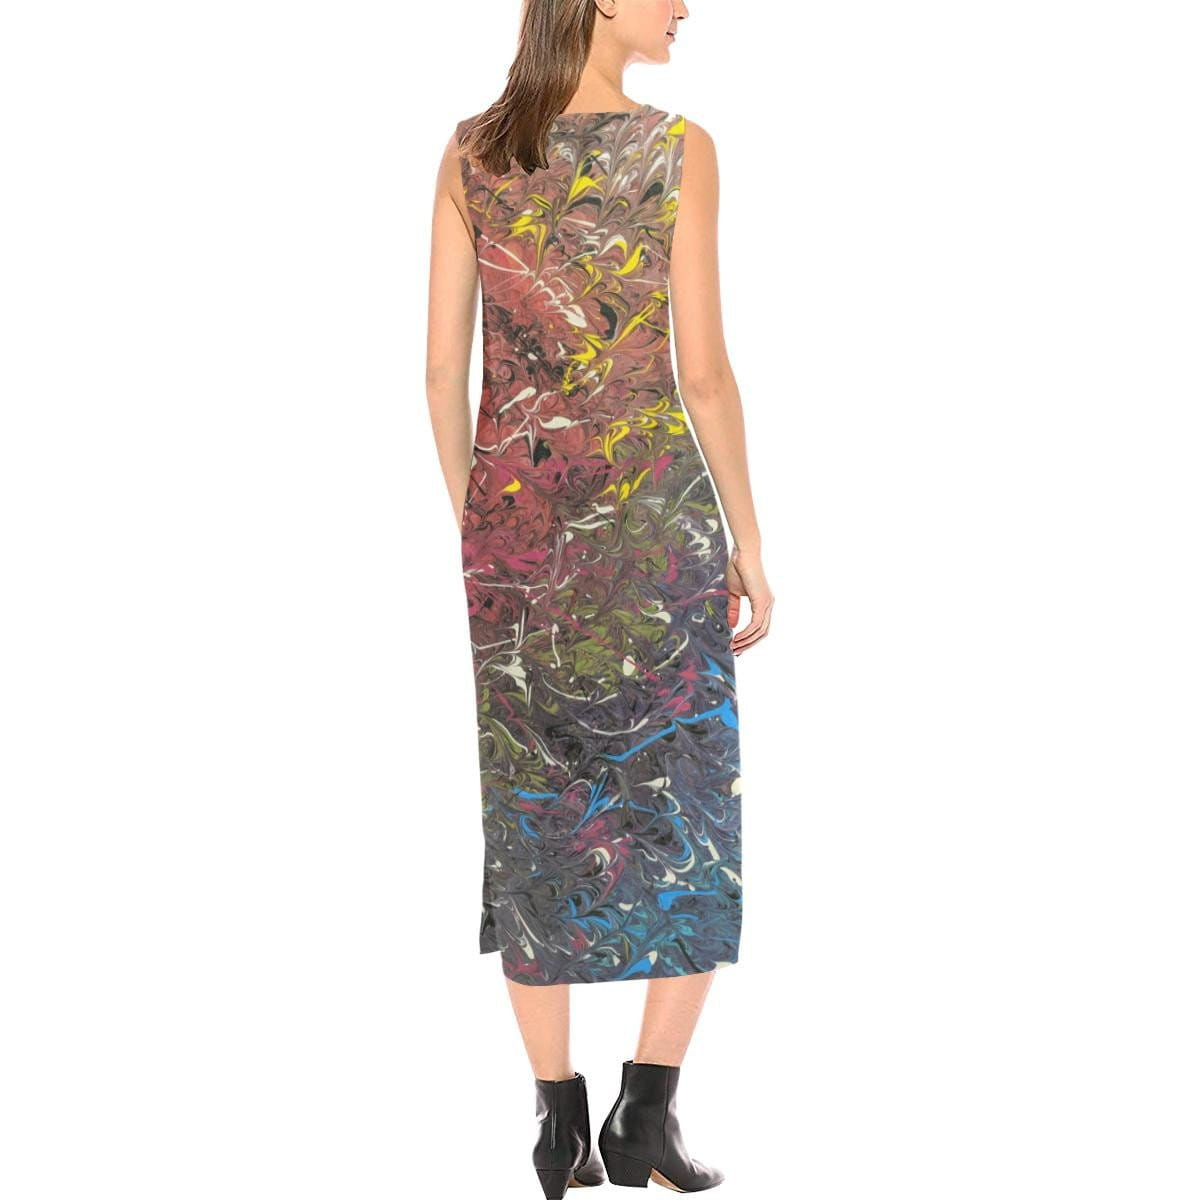 Mood Splash - Sleeveless Open Fork Dress - Fiercely Fem